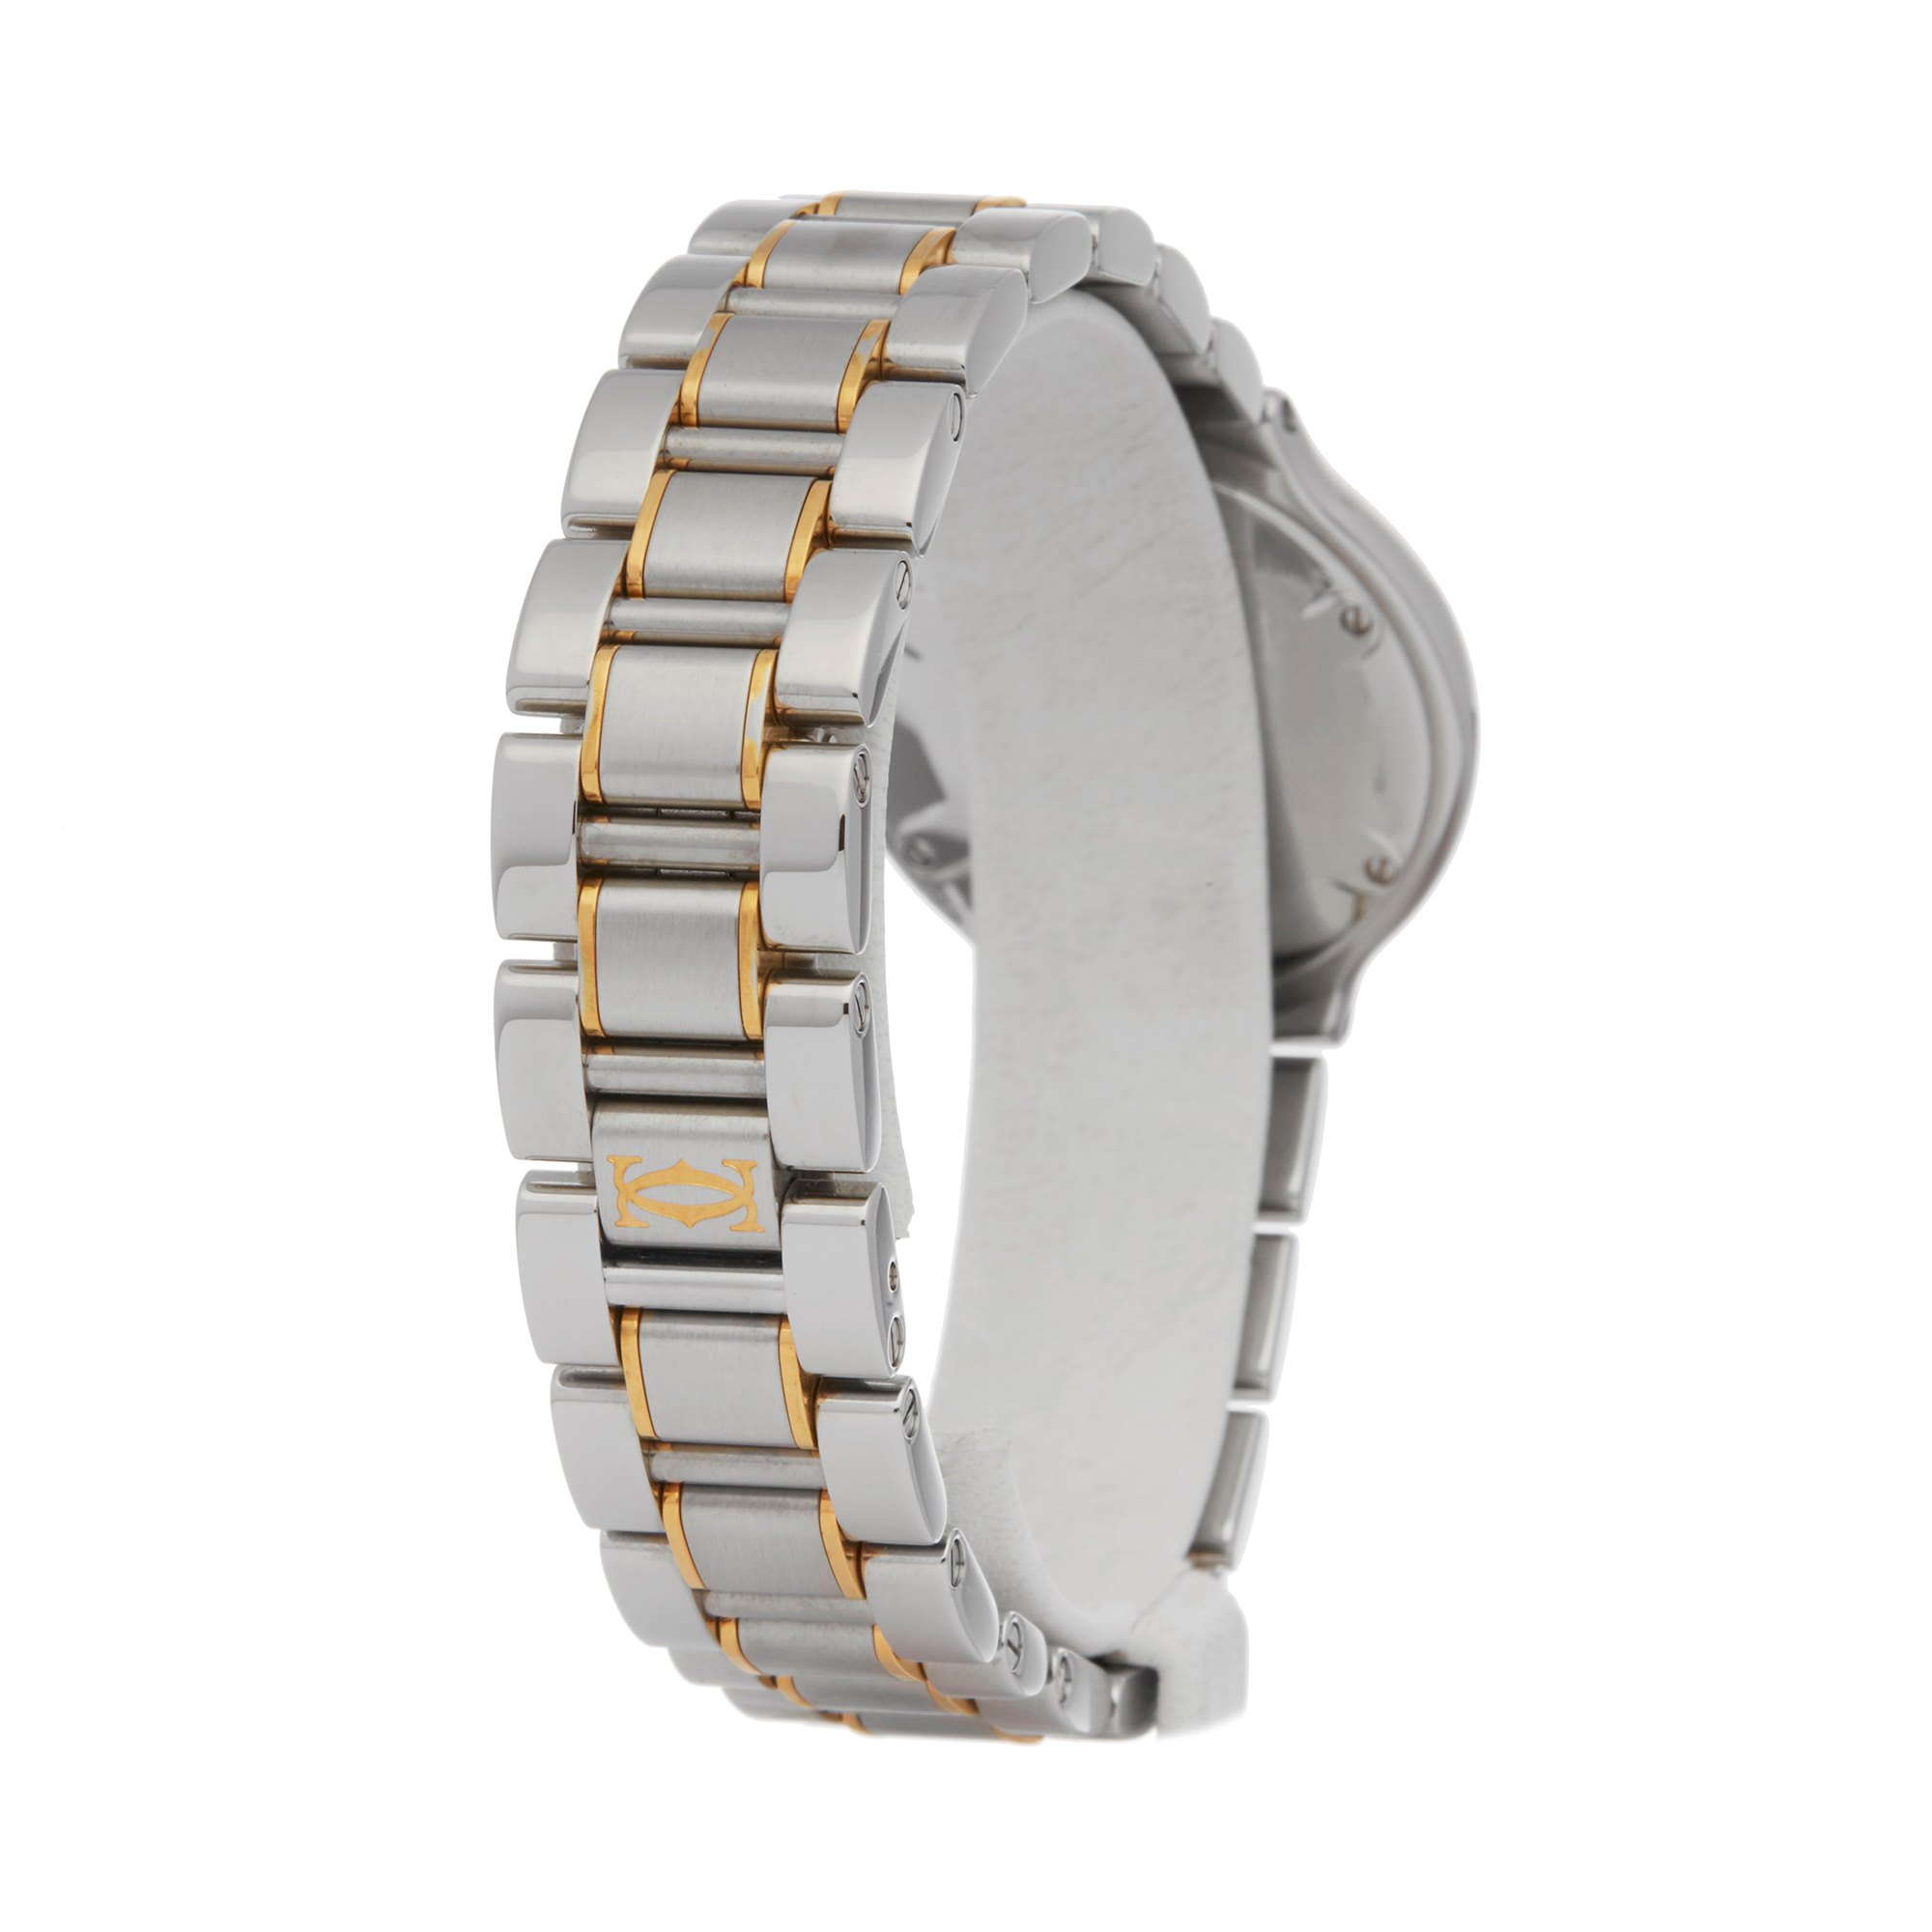 Cartier Must De 21 Stainless Steel & Yellow Gold W10073R6 or 1340